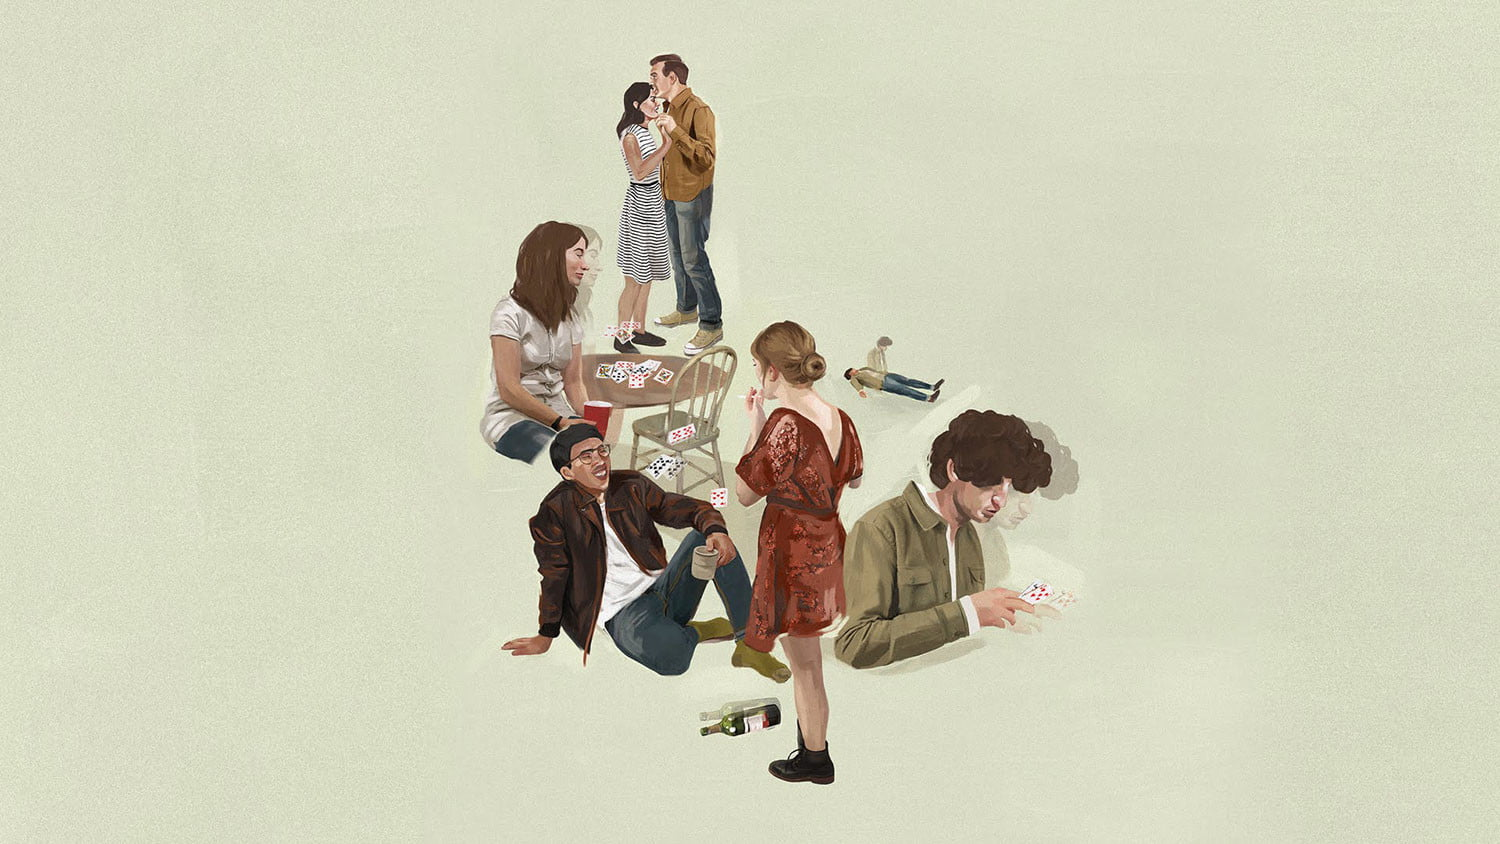 digital trends best albums of 2016 so far the party andy shauf